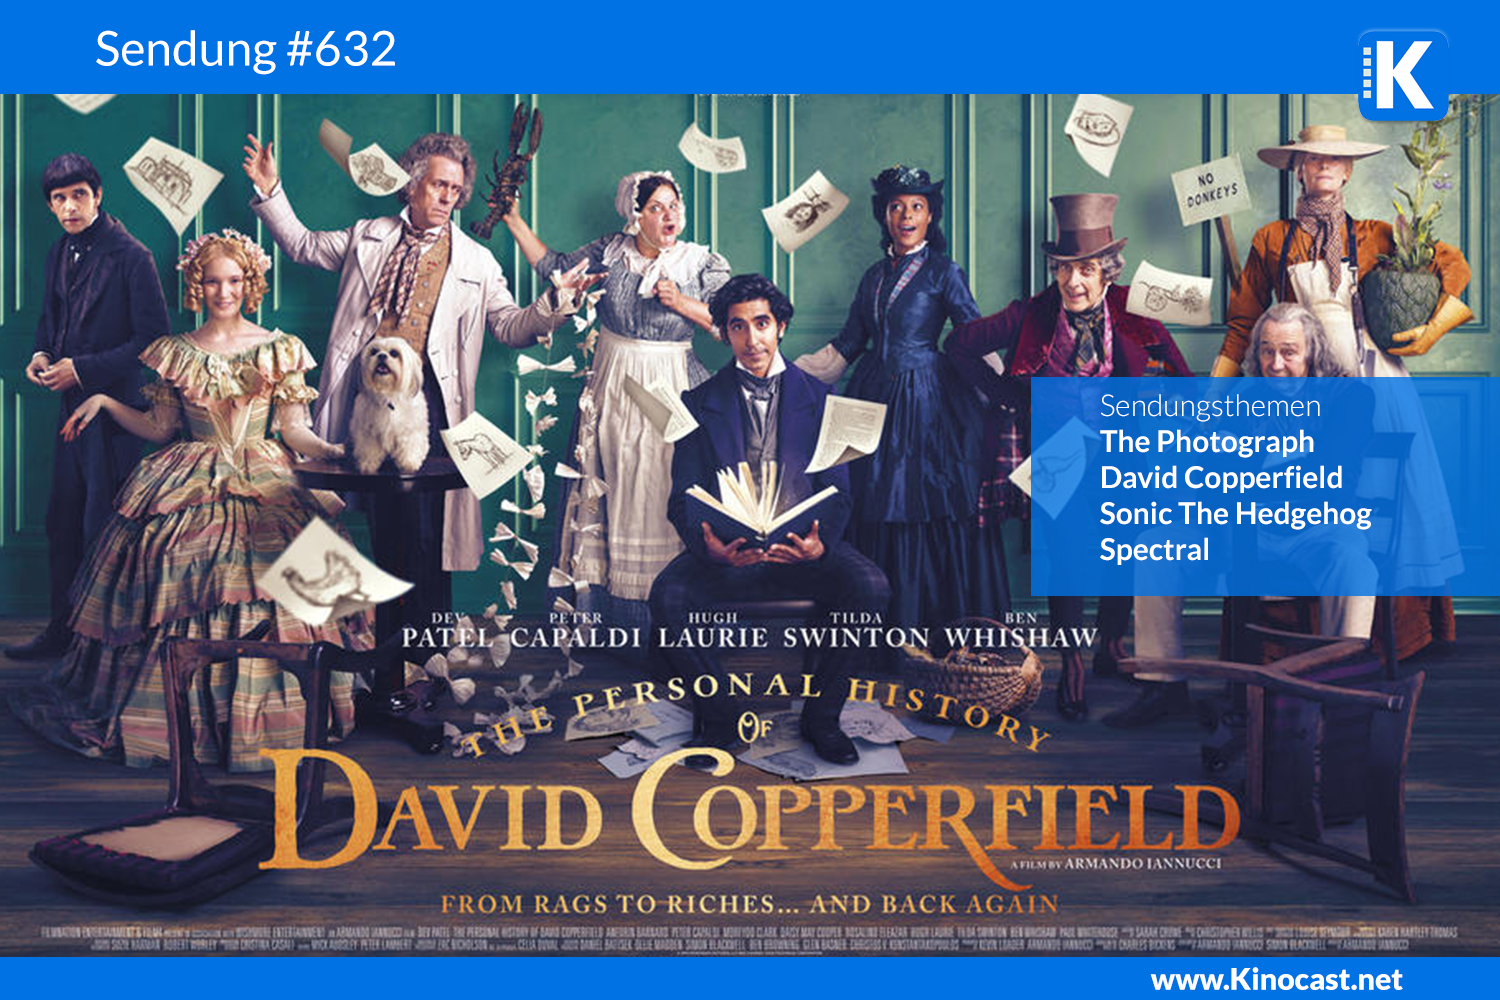 David Copperfield The Photograph Spectral Sonic Download Kritik film german deutsch Podcast